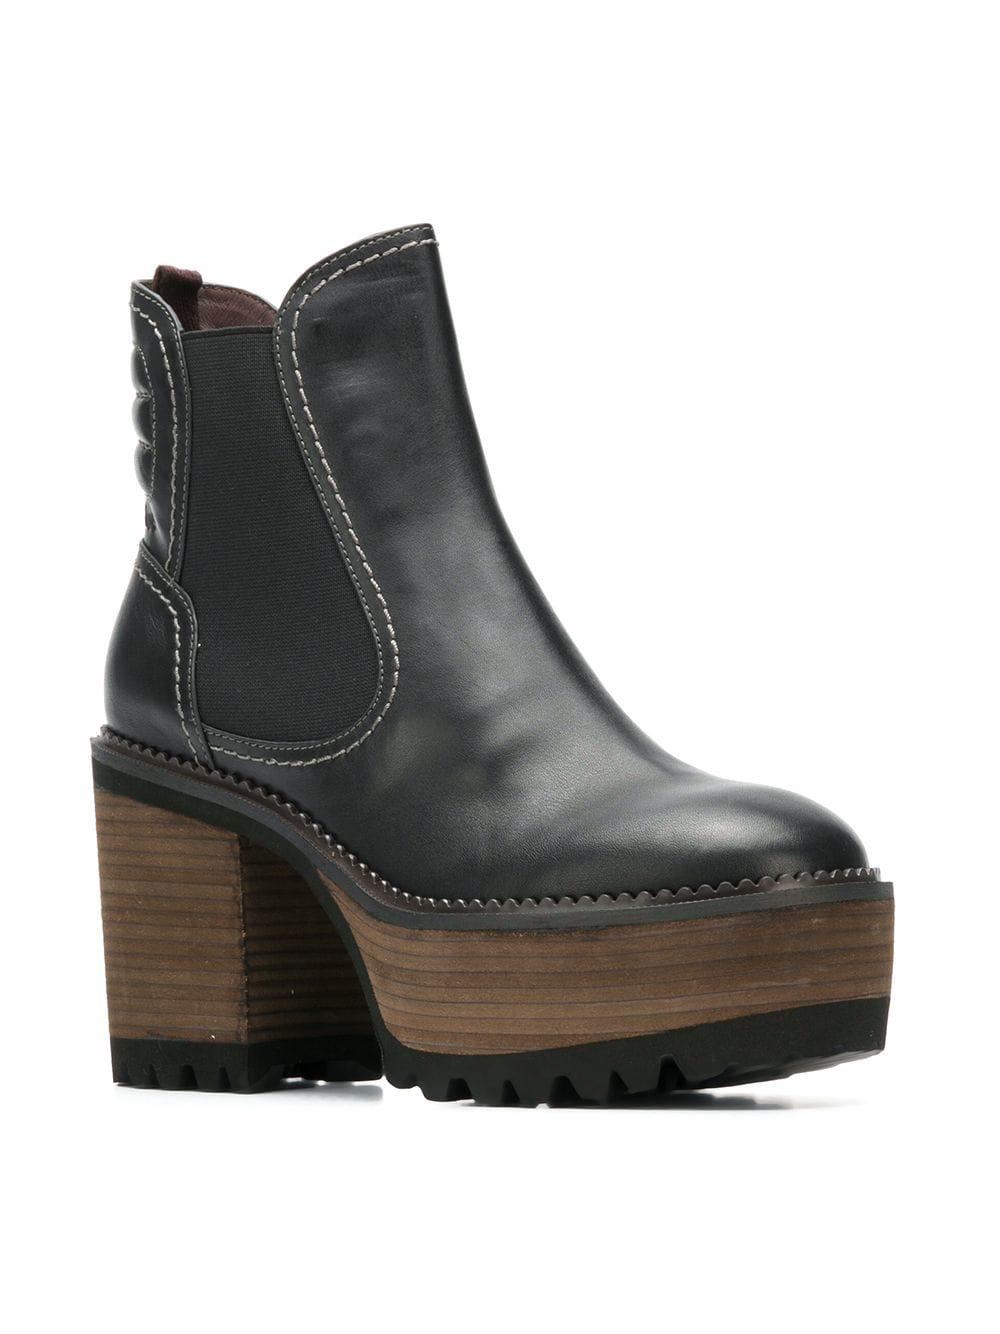 See By Chloé Erika Leather Ankle Boots in Black